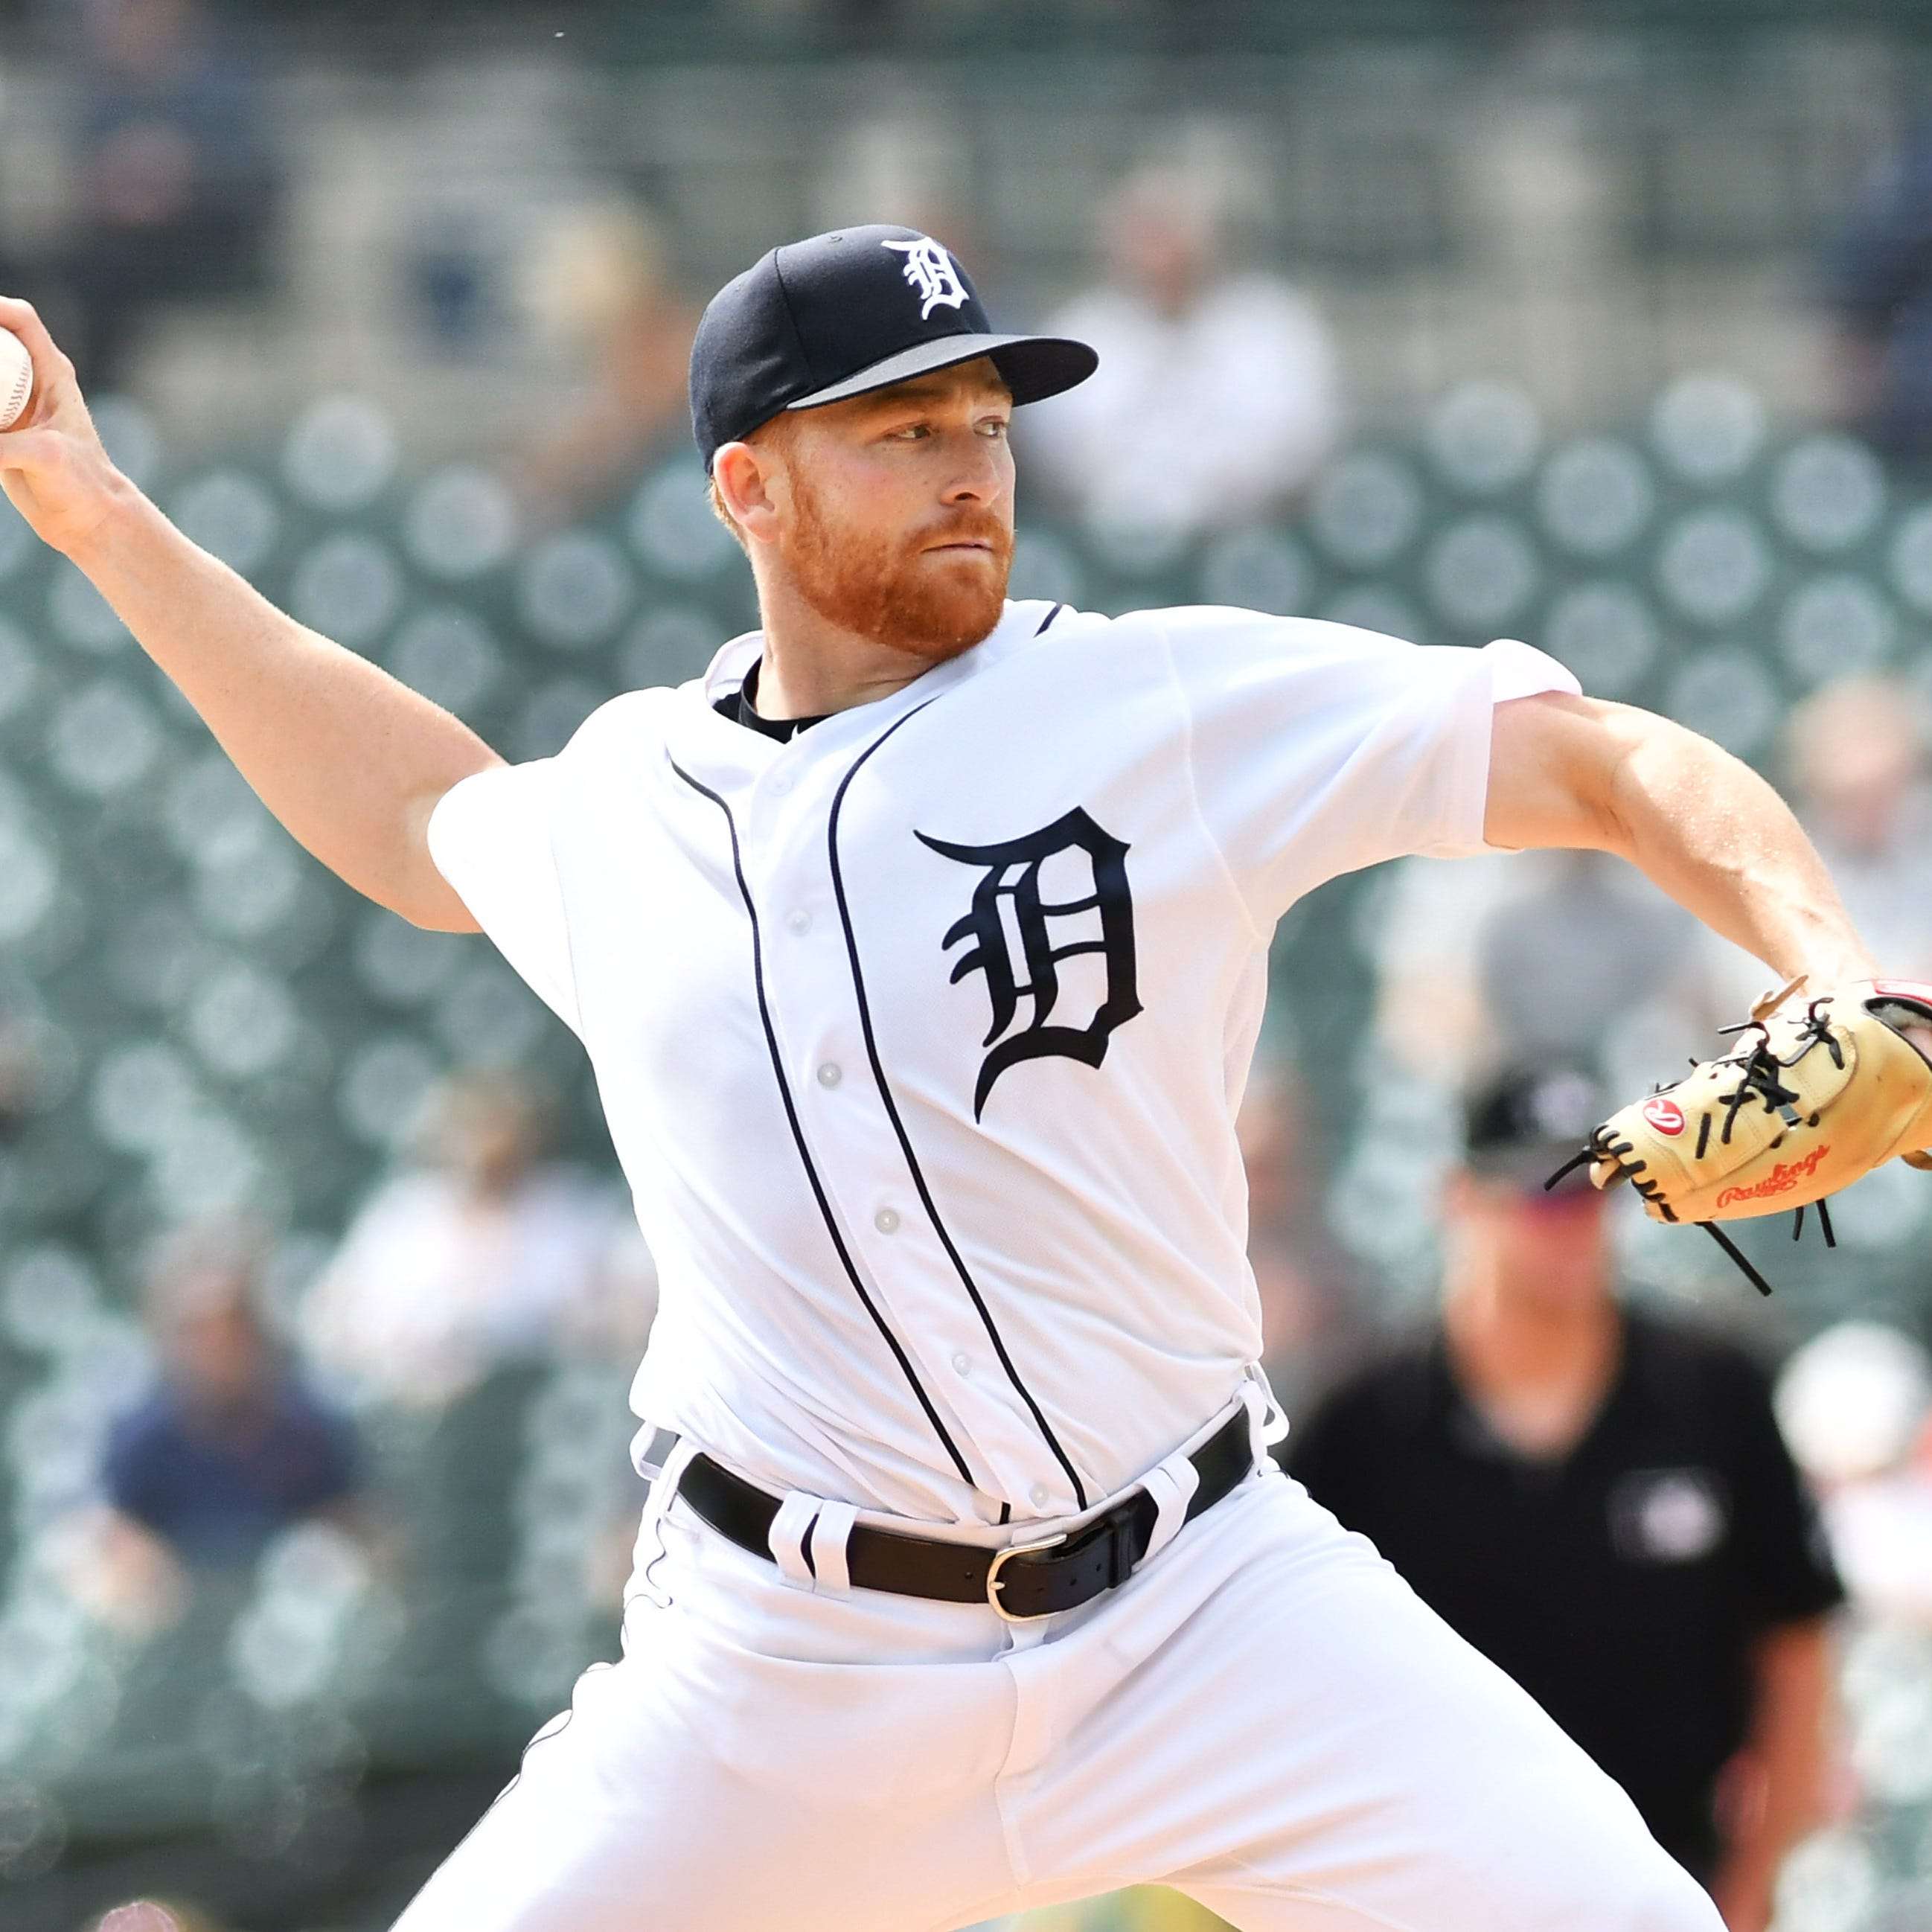 'It snowballed': Tigers fizzle in Turnbull's debut, fall to Twins